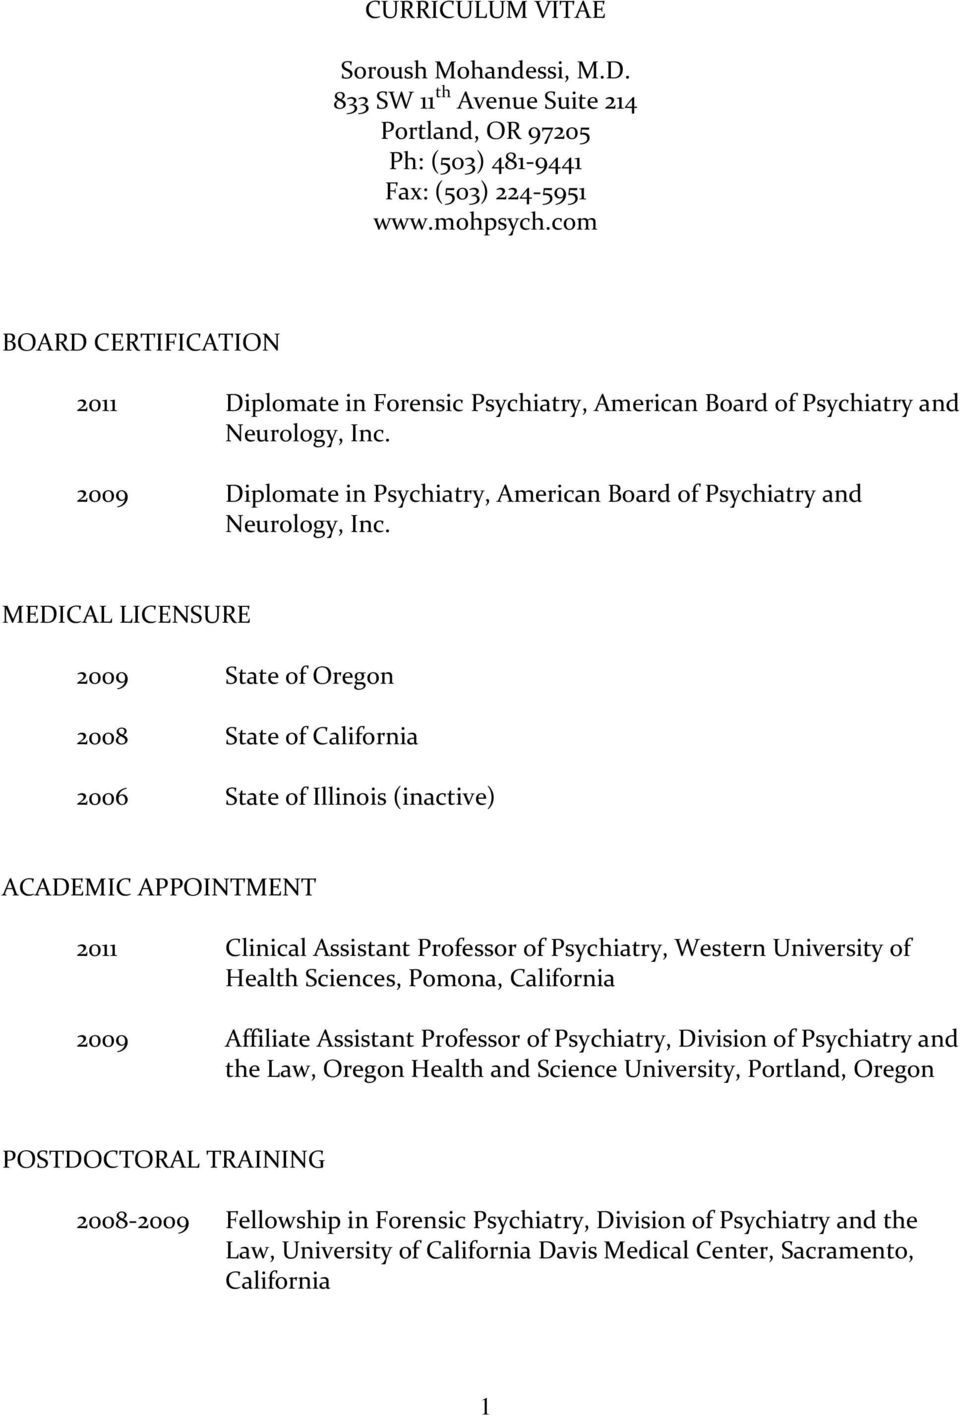 MEDICAL LICENSURE 2009 State of Oregon 2008 State of California 2006 State of Illinois (inactive) ACADEMIC APPOINTMENT 2011 Clinical Assistant Professor of Psychiatry, Western University of Health